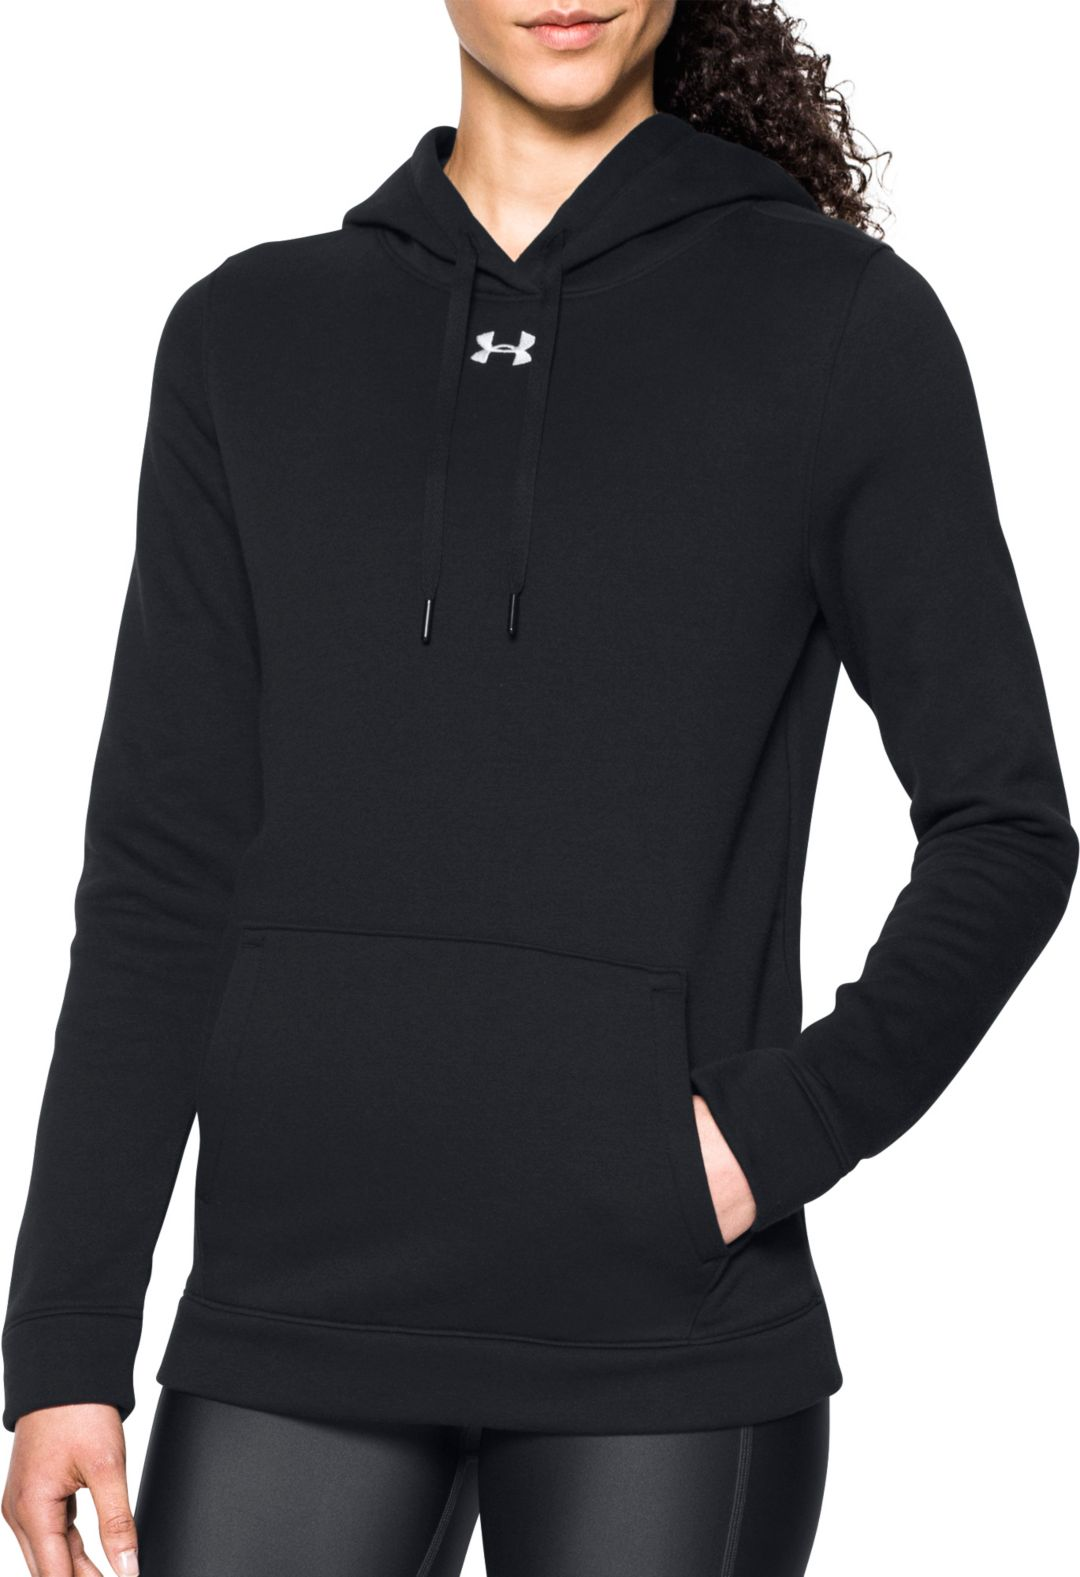 Rival Hoodie Under Women's Under Armour 5AL3q4Rj